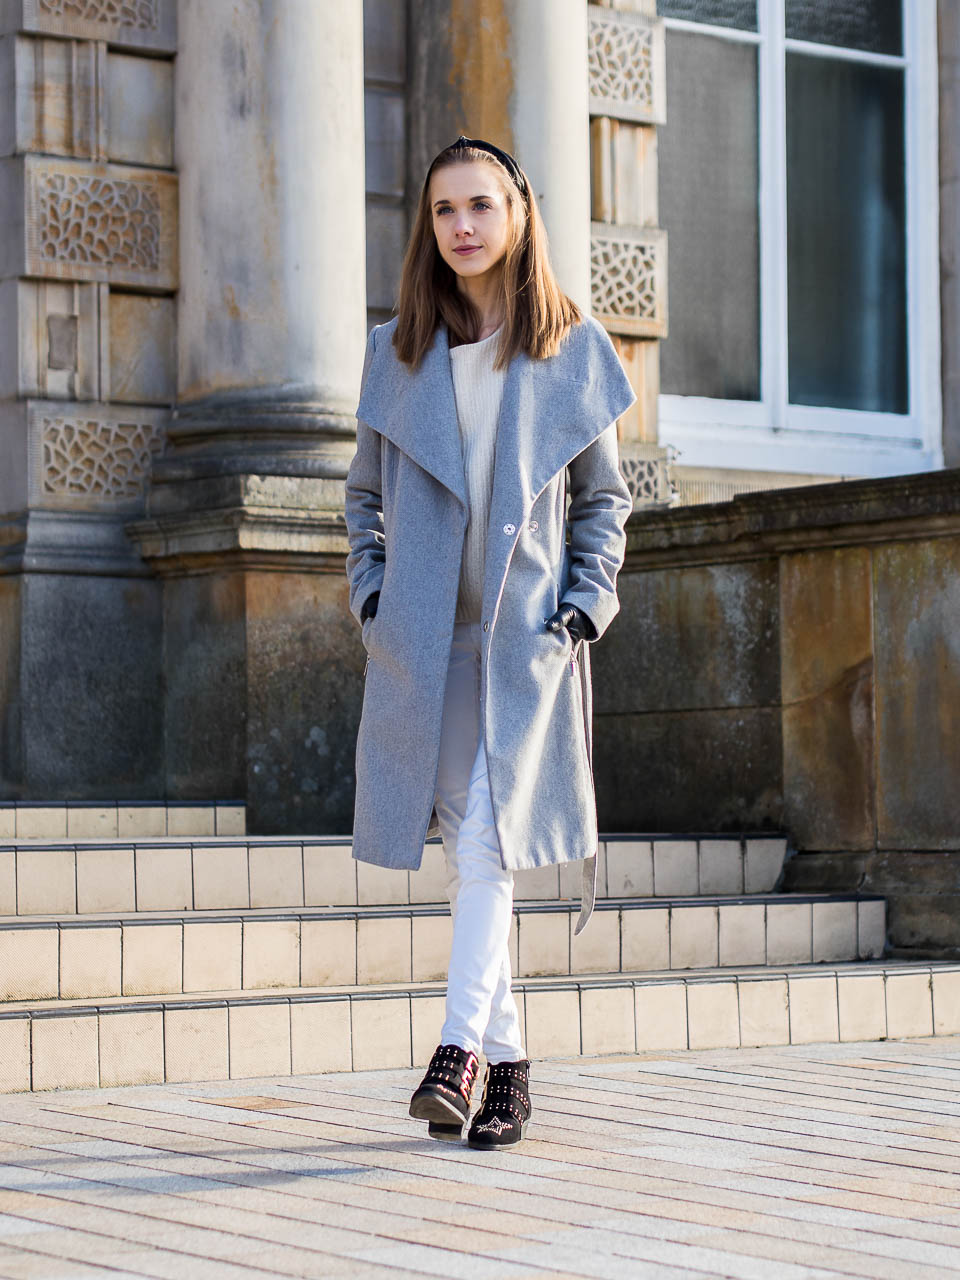 beating the winter blues and a white and grey winter outfit